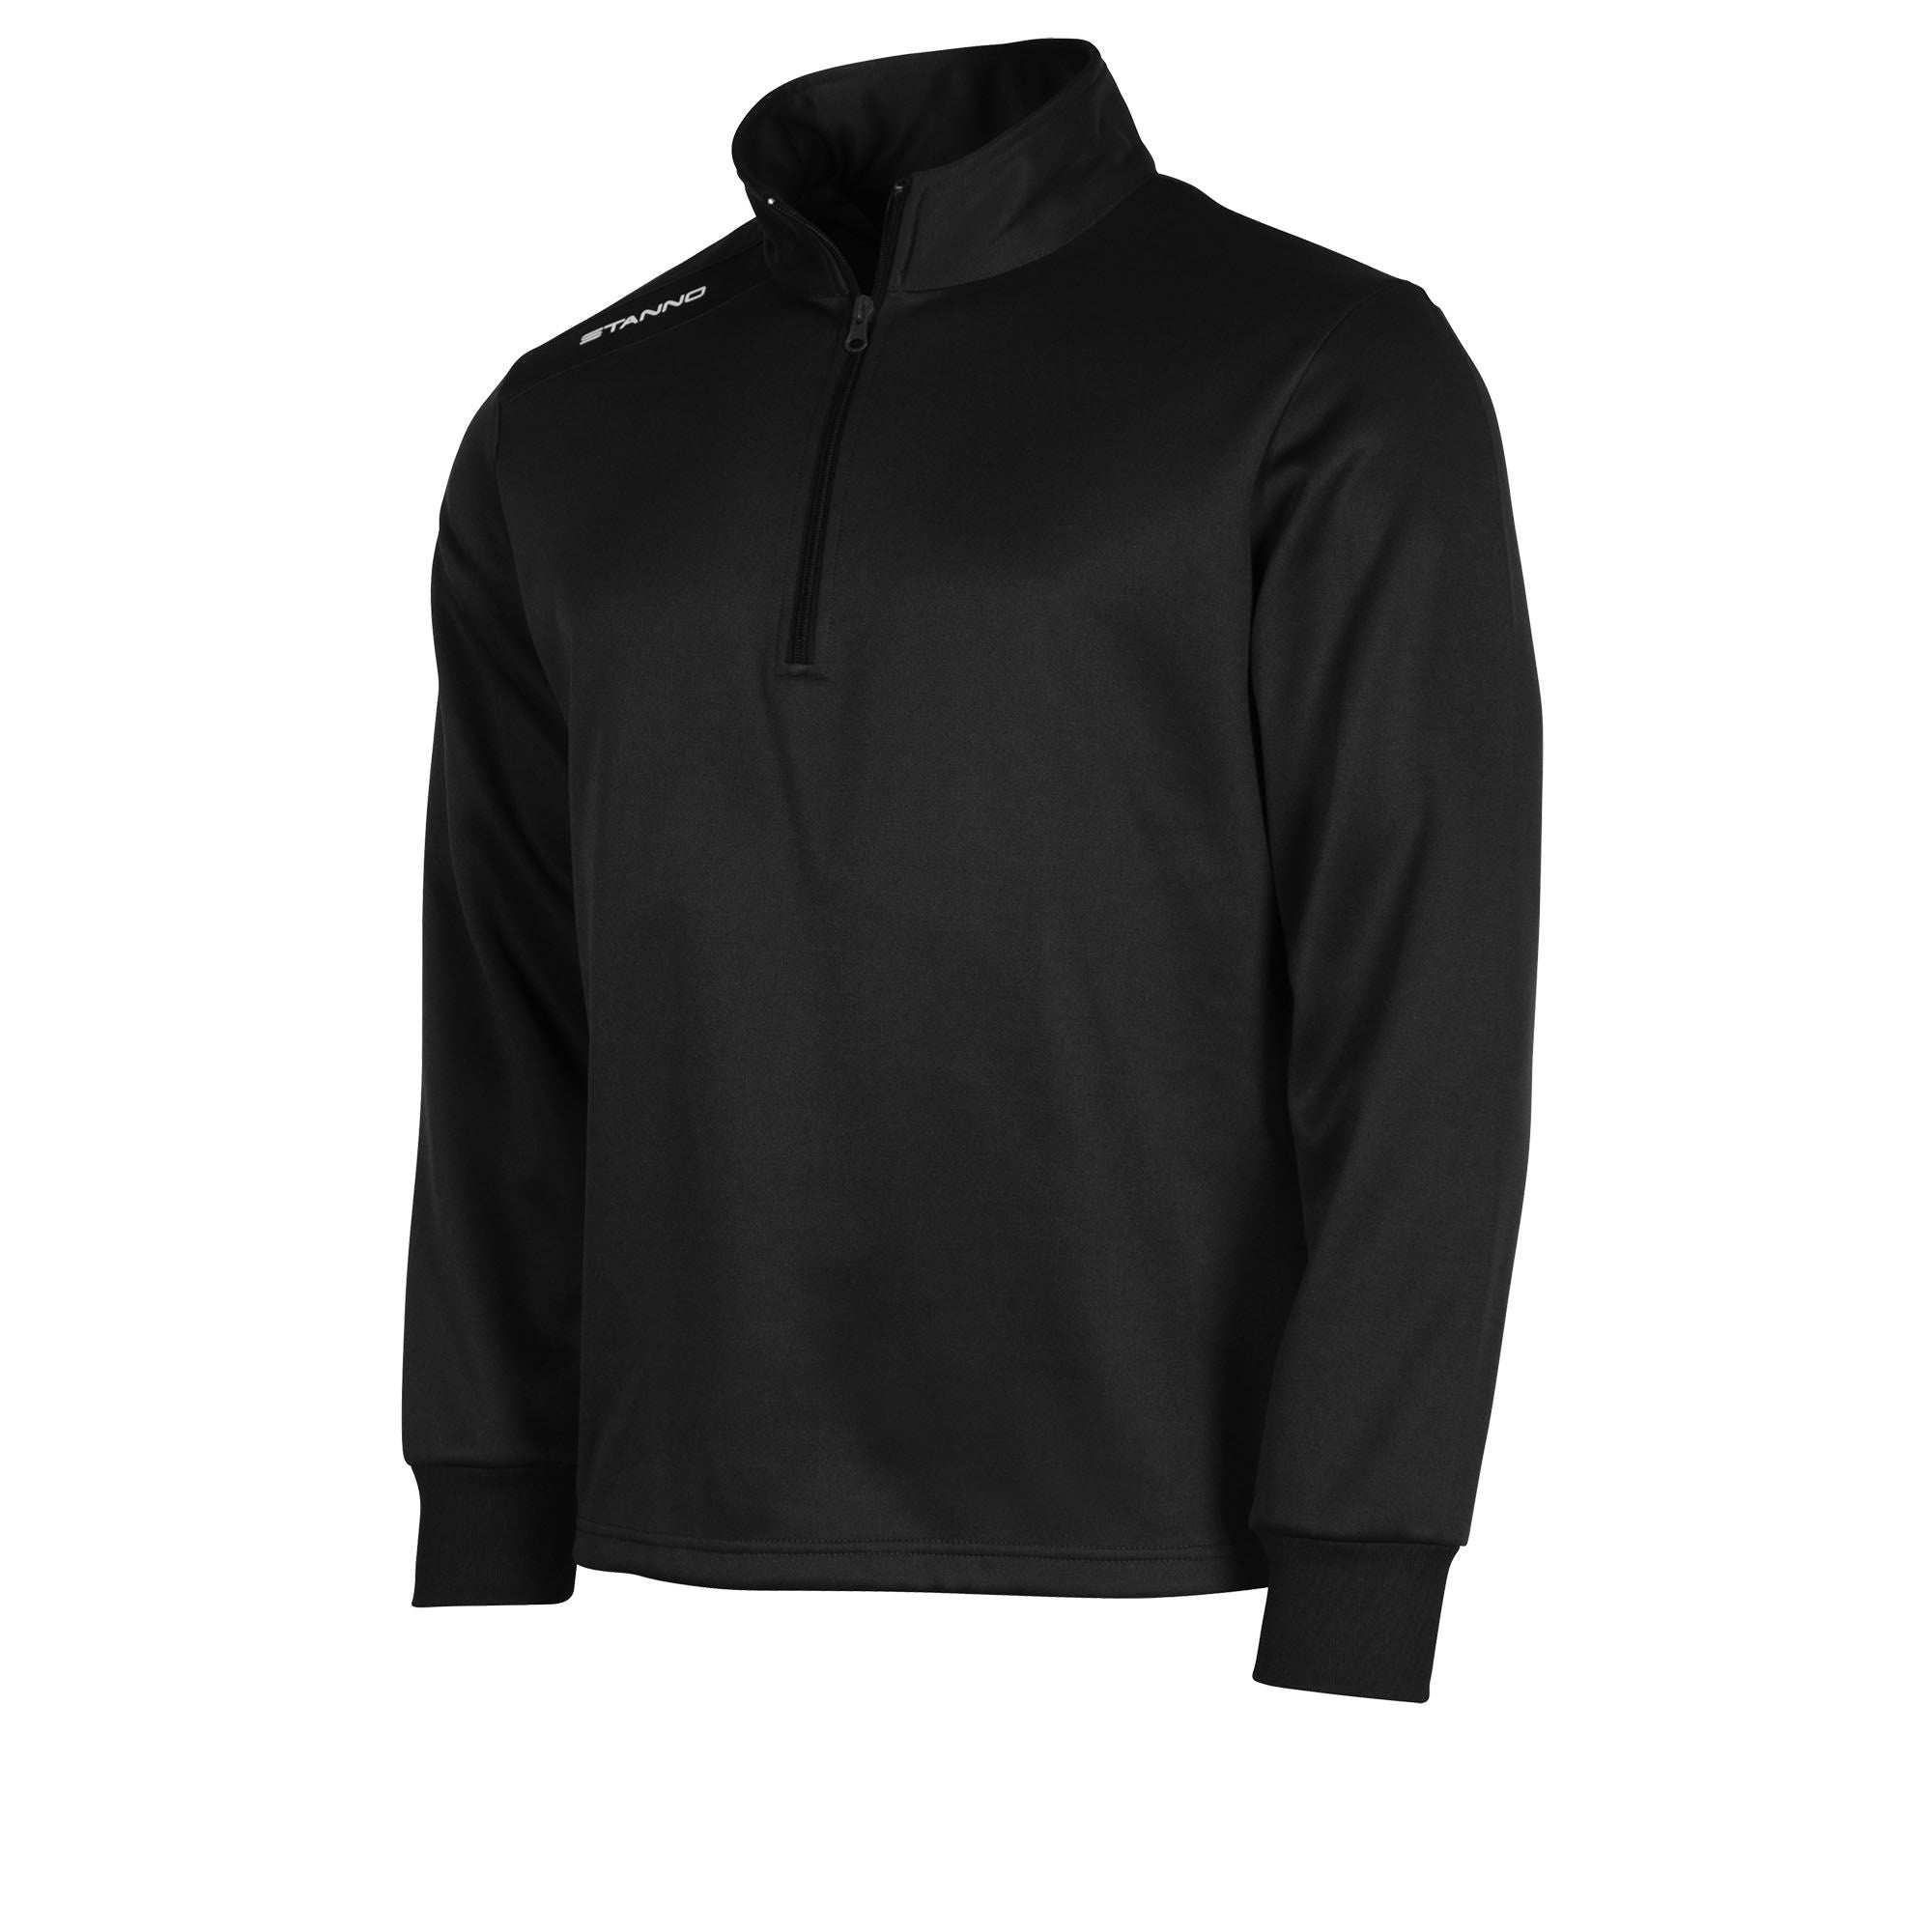 Front of black Stanno Field half zip top with white Stanno printed logo on right shoulder